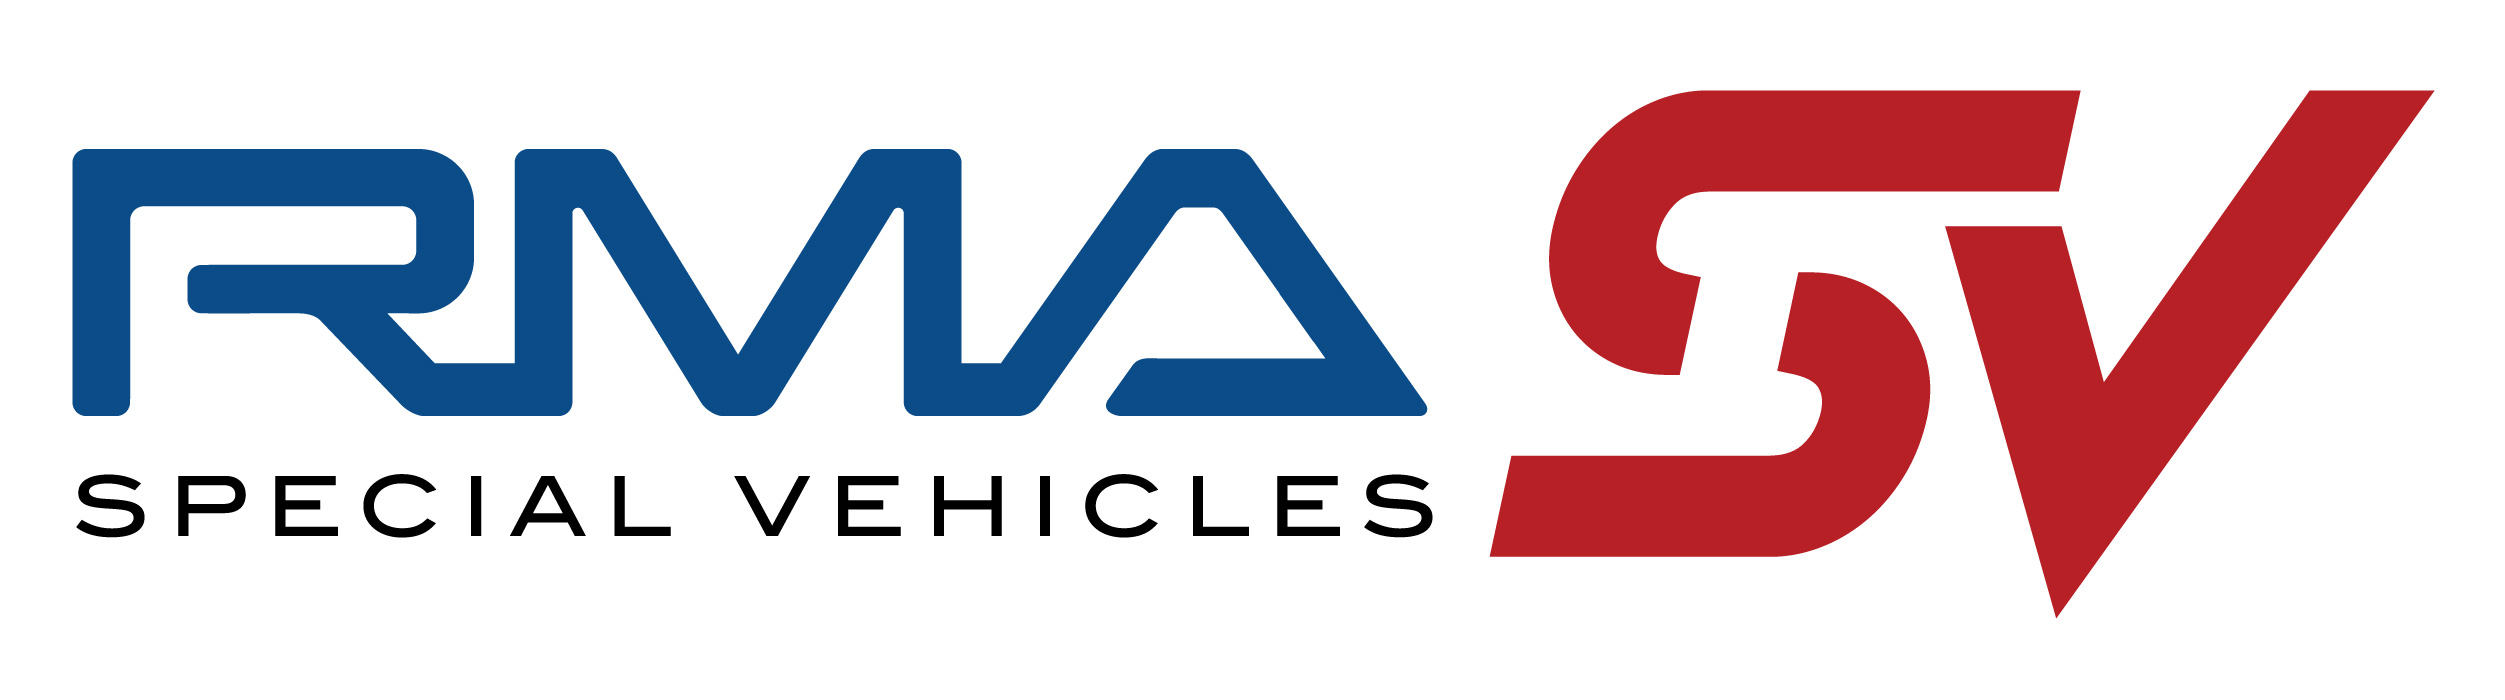 RMA Special Vehicles – RMA Group